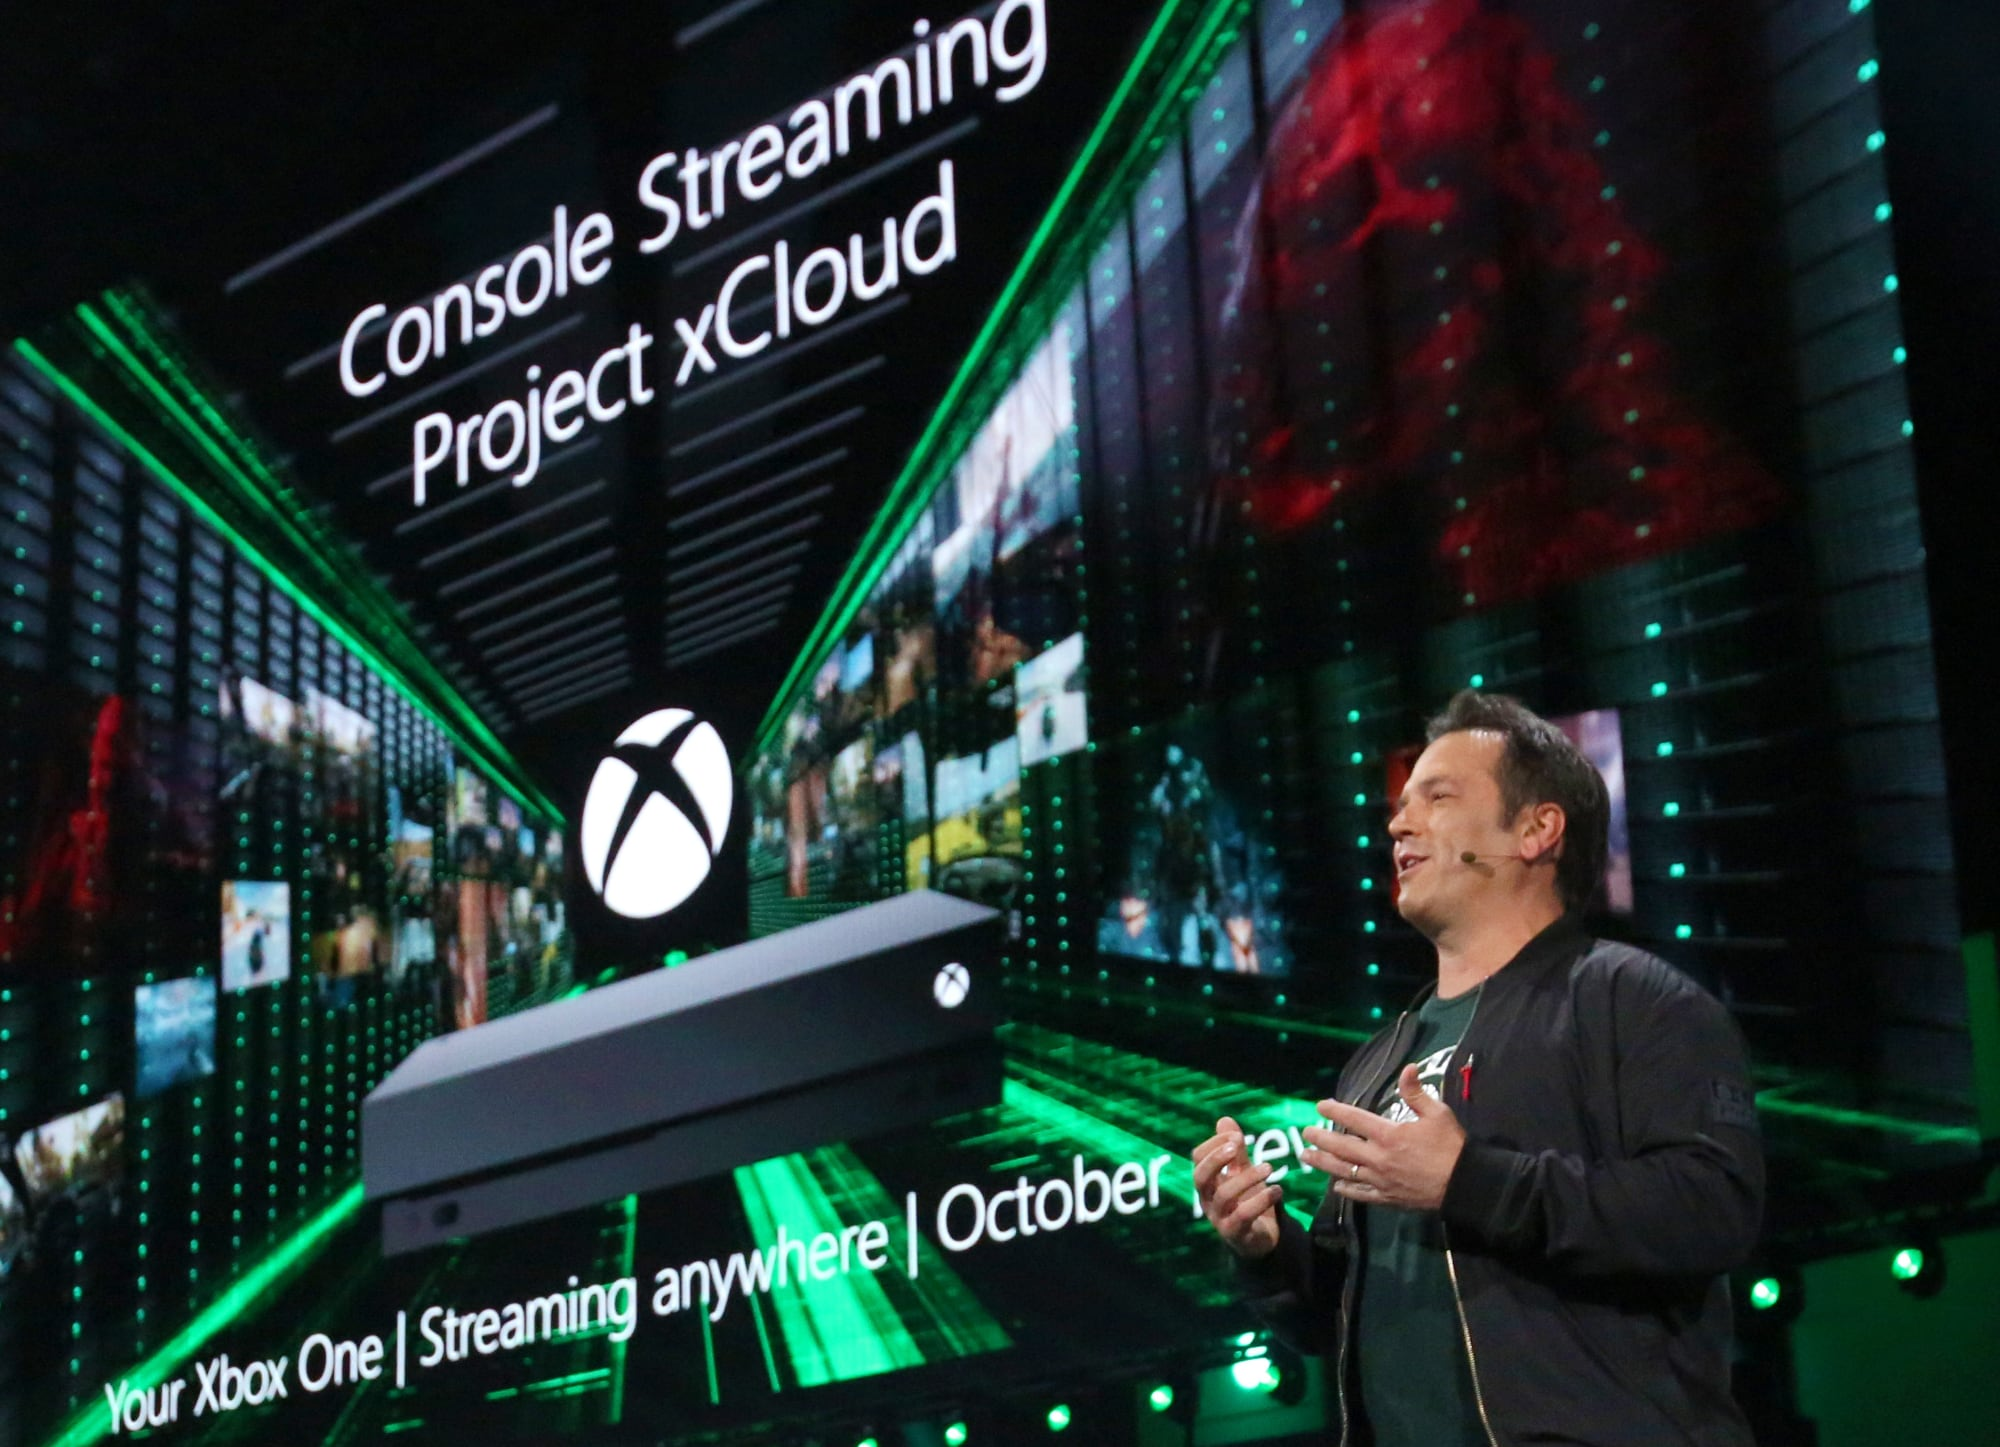 Next-gen Xbox: 8K graphics, 120fps, SSD & ray-tracing - launching in